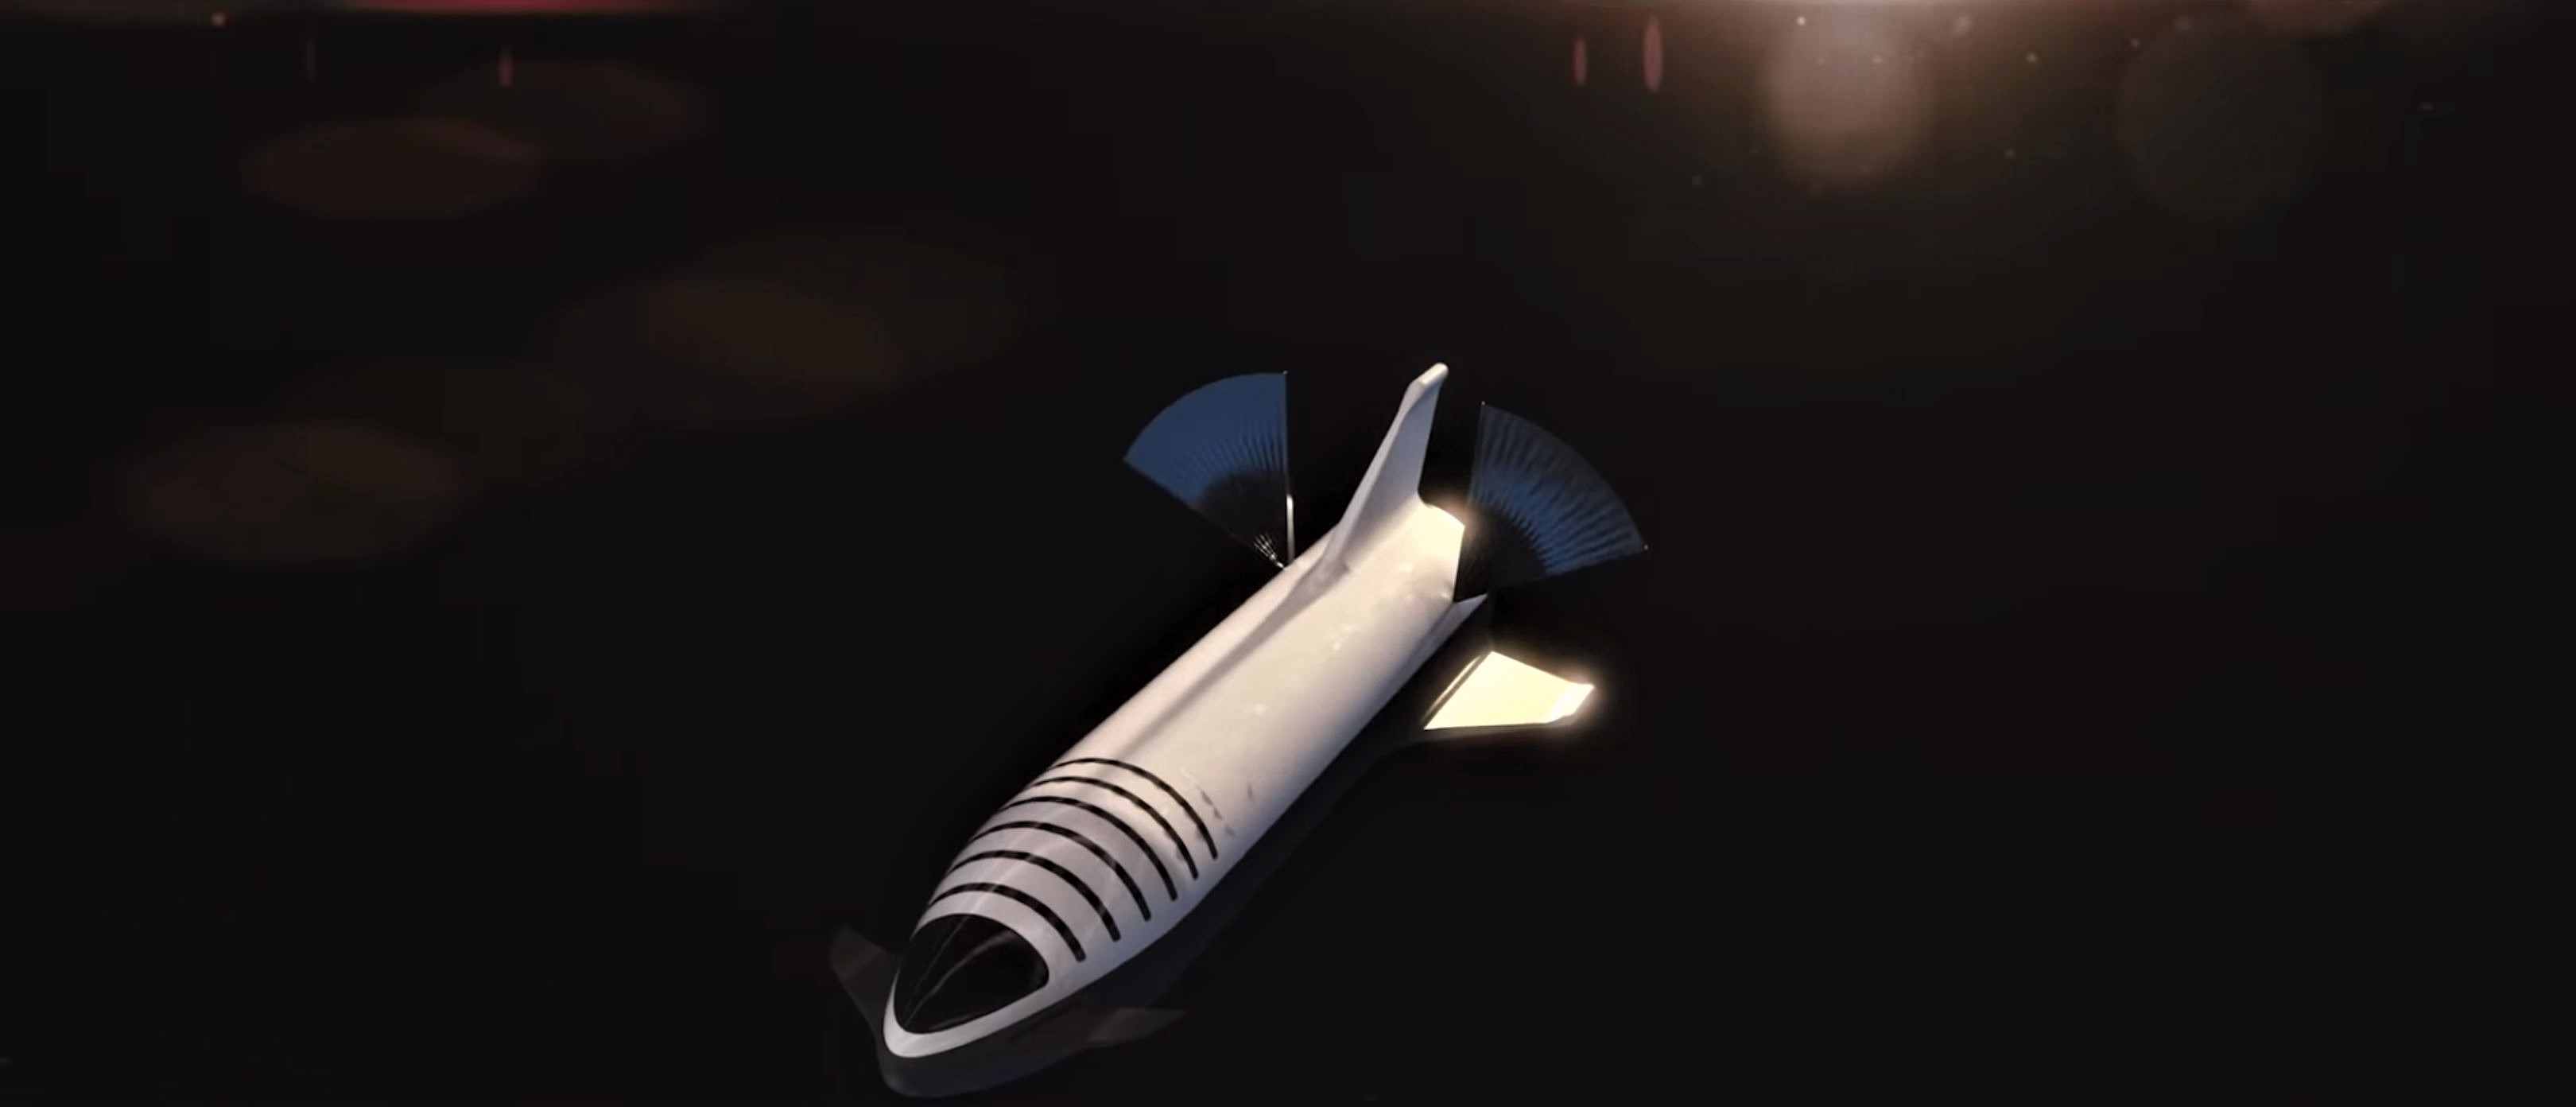 BFR 2018 launch render (SpaceX) 11